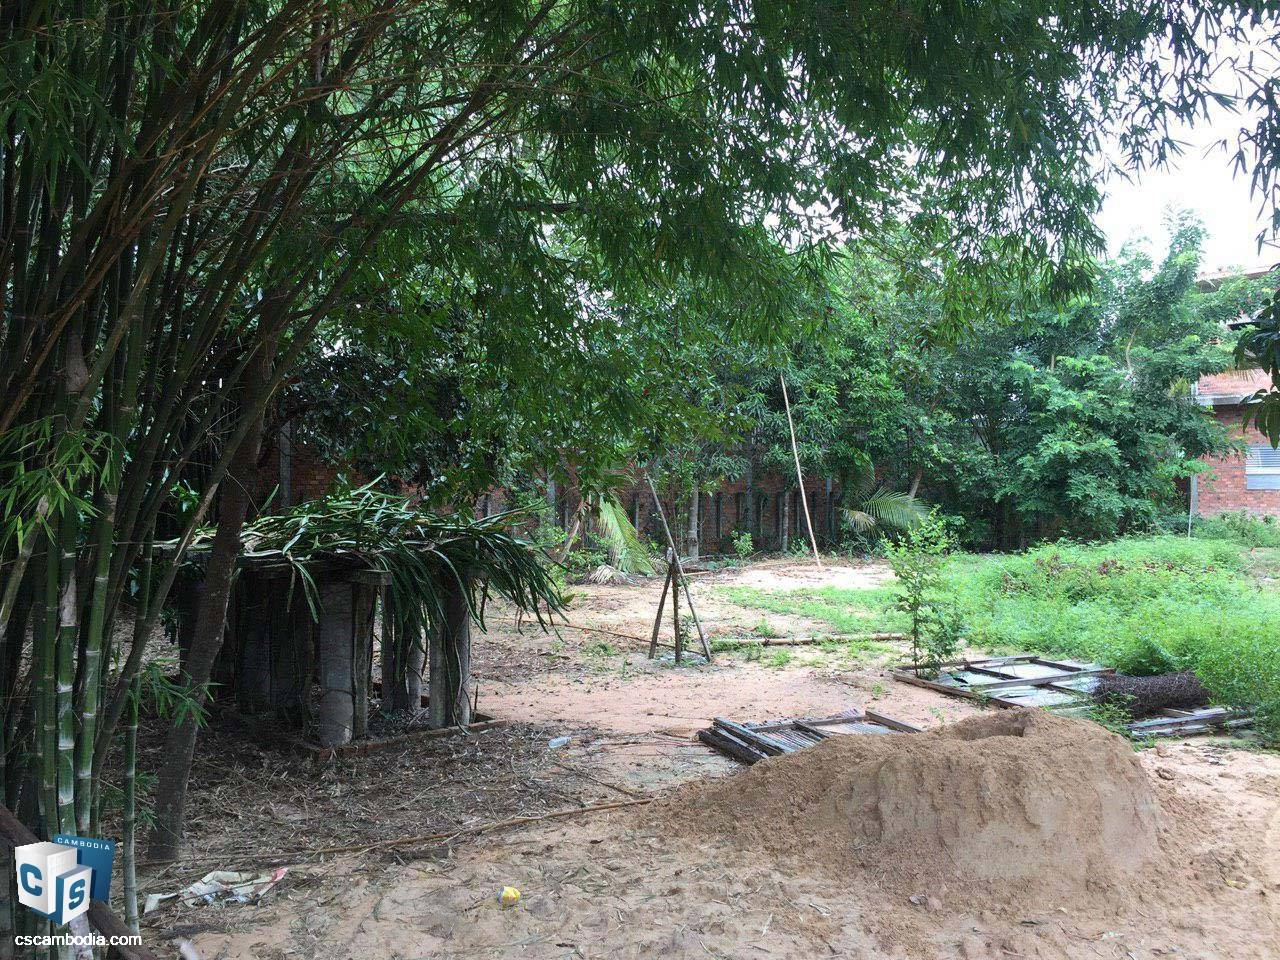 816 Sq Meters Of Land – For Sale – Treang Village – Sla Kram Commune-Siem Reap